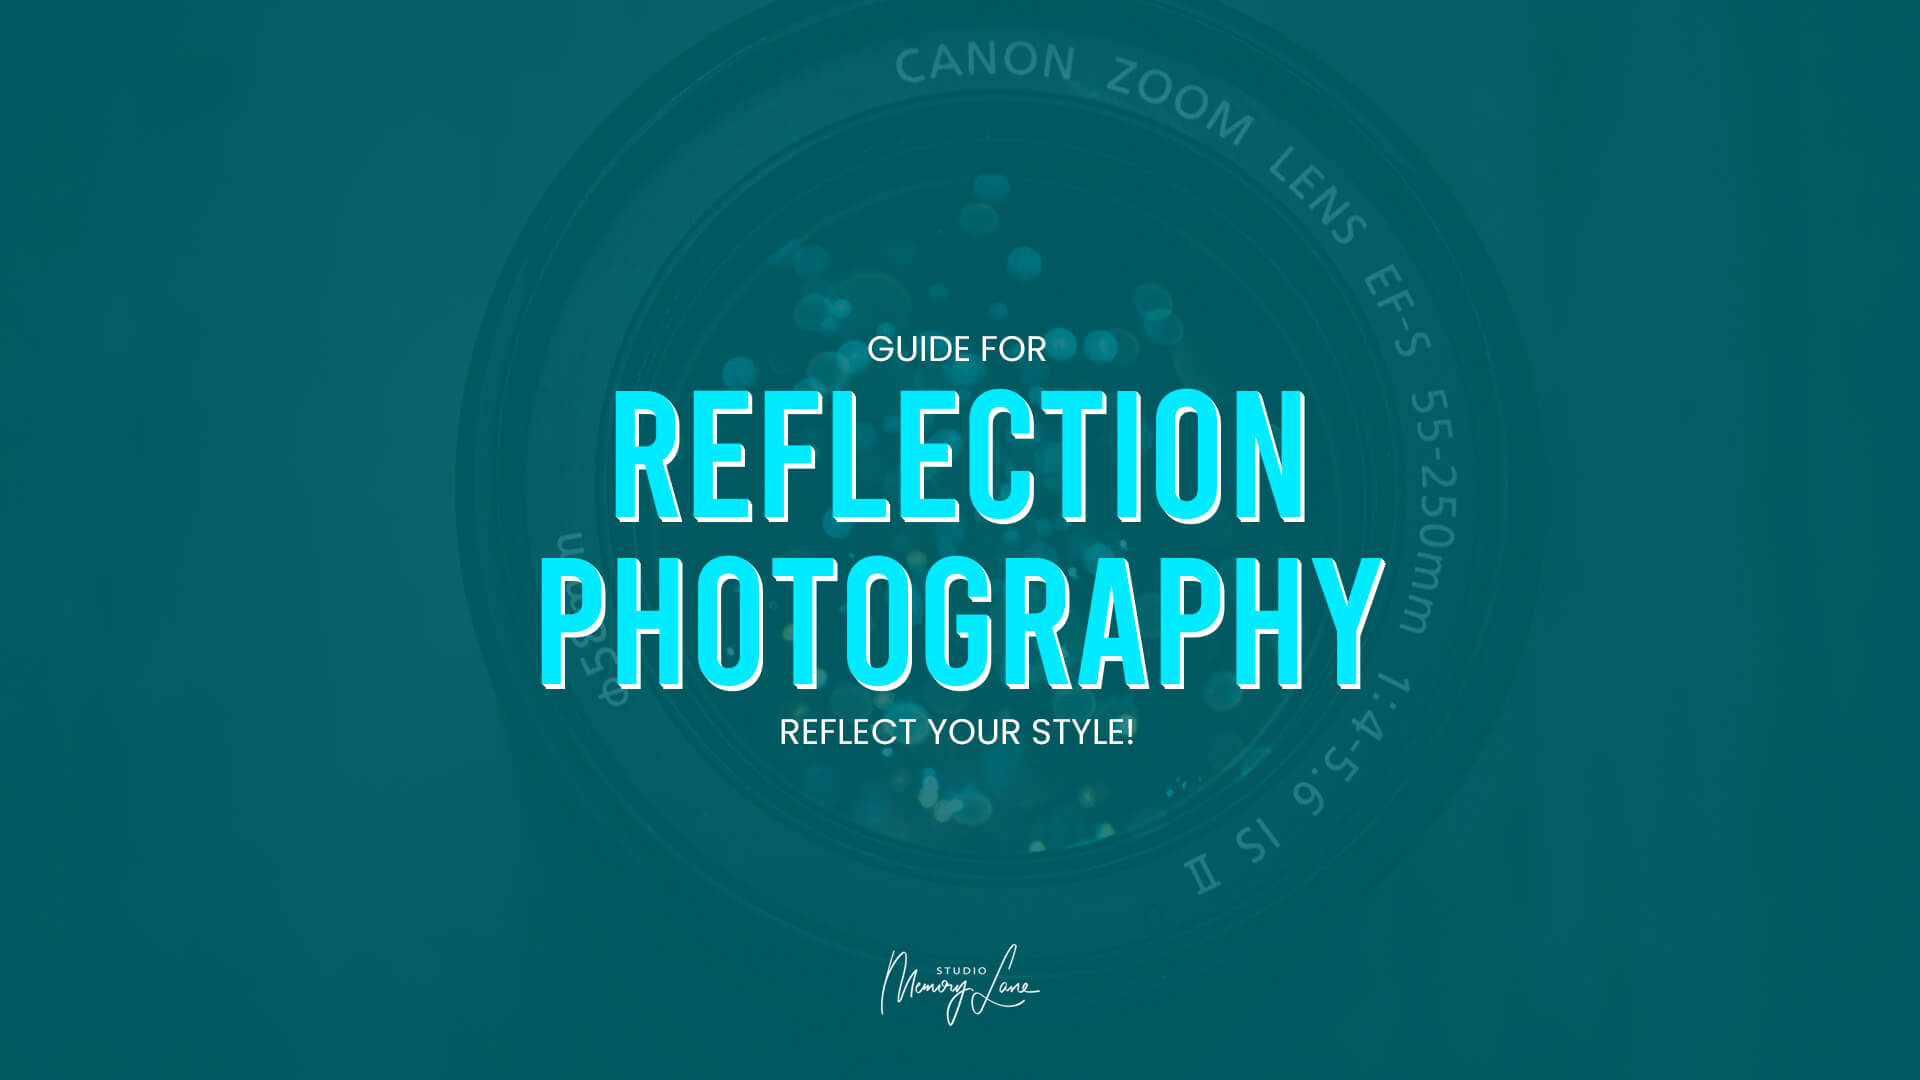 Guide for reflection photography – Reflect your style!